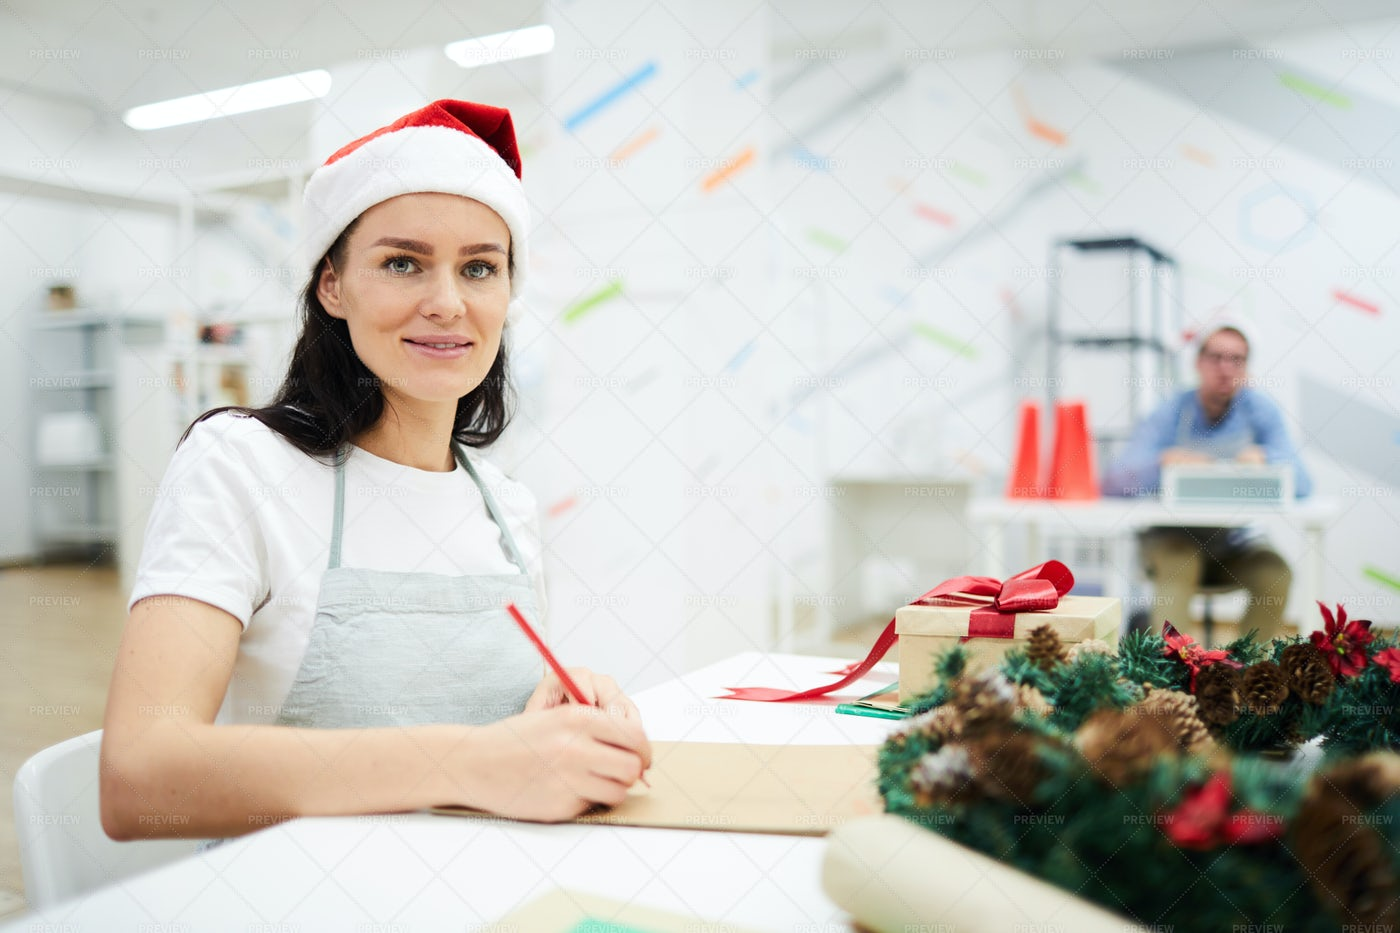 Smiling Lady Drawing In Sketchpad: Stock Photos